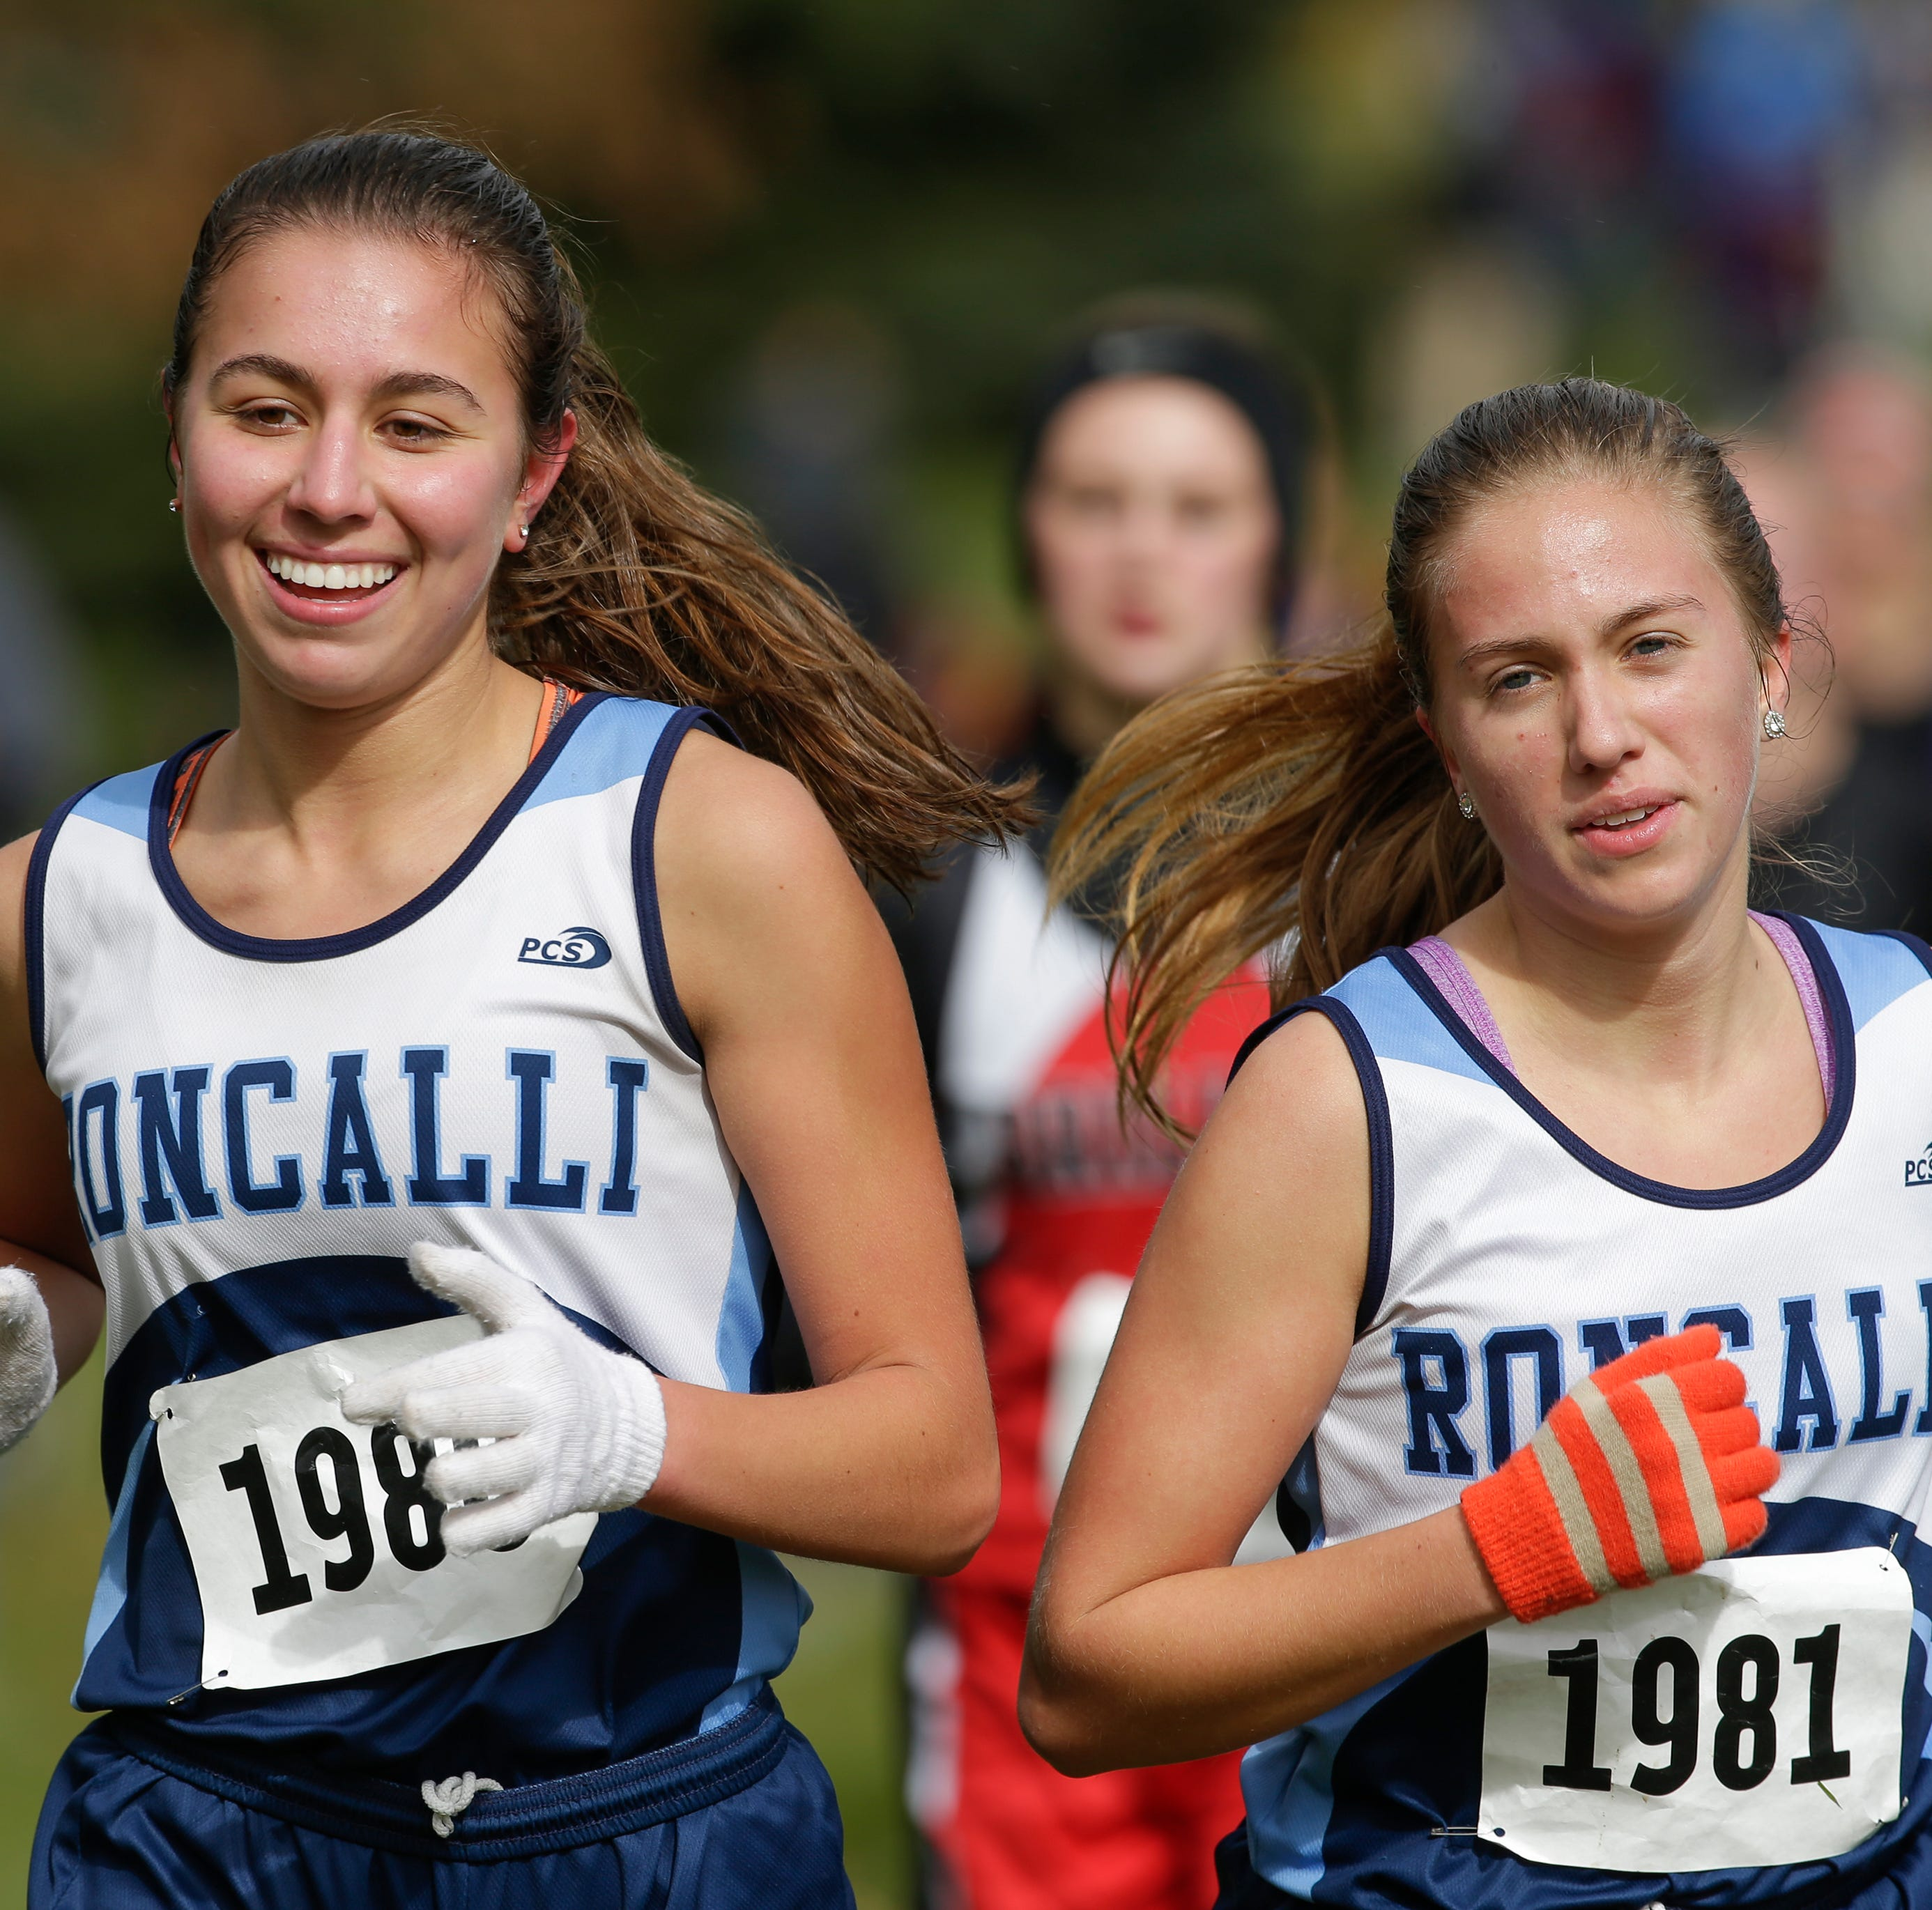 High school: Saturday's cross country sectionals